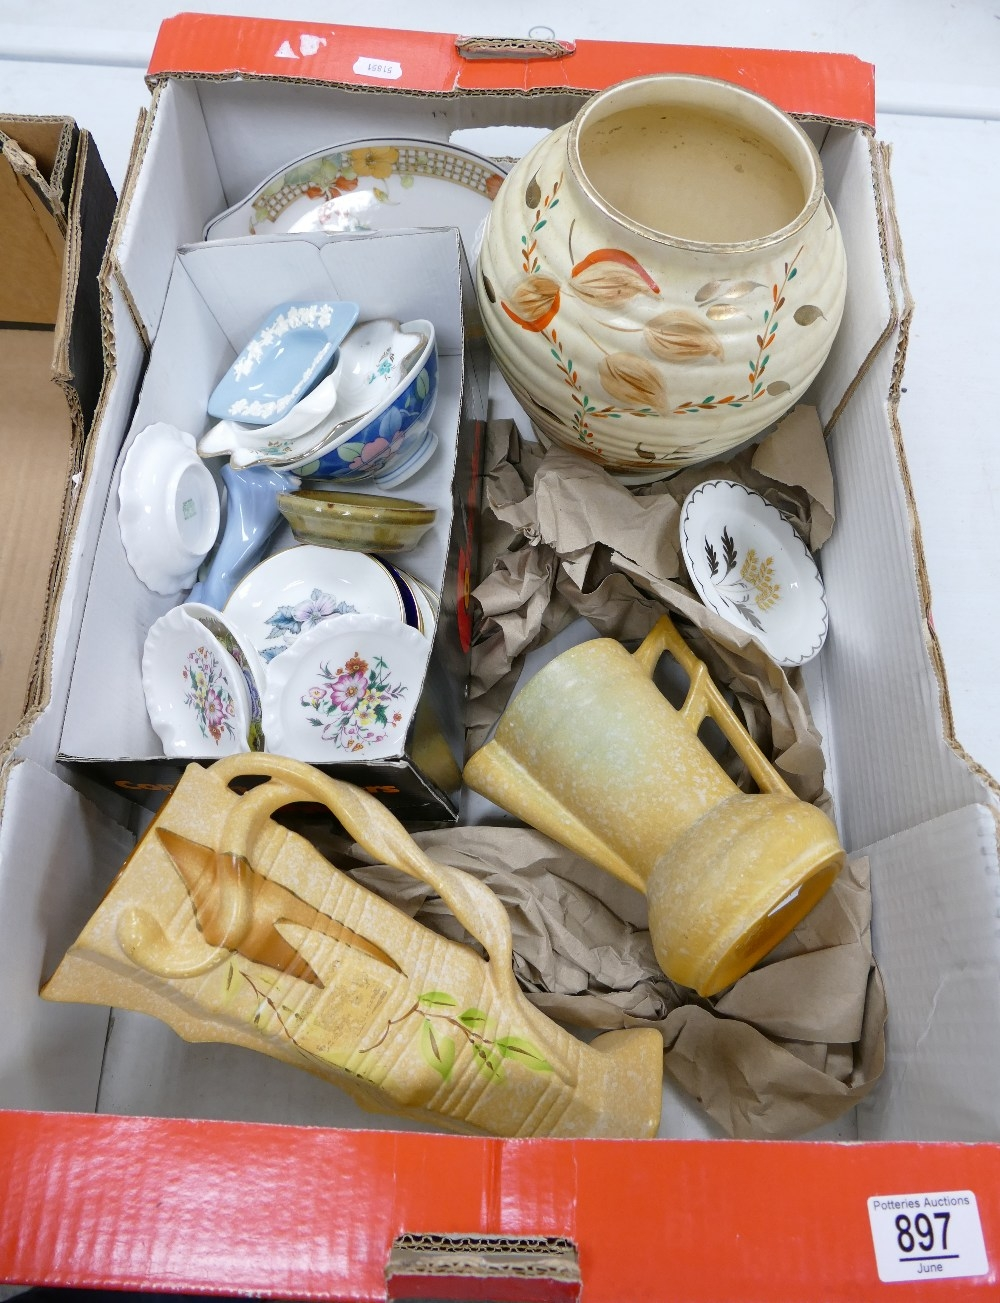 A mixed collection of items to include: Deco Delcroft vases, large Kensington Pottery Vase, - Image 2 of 2